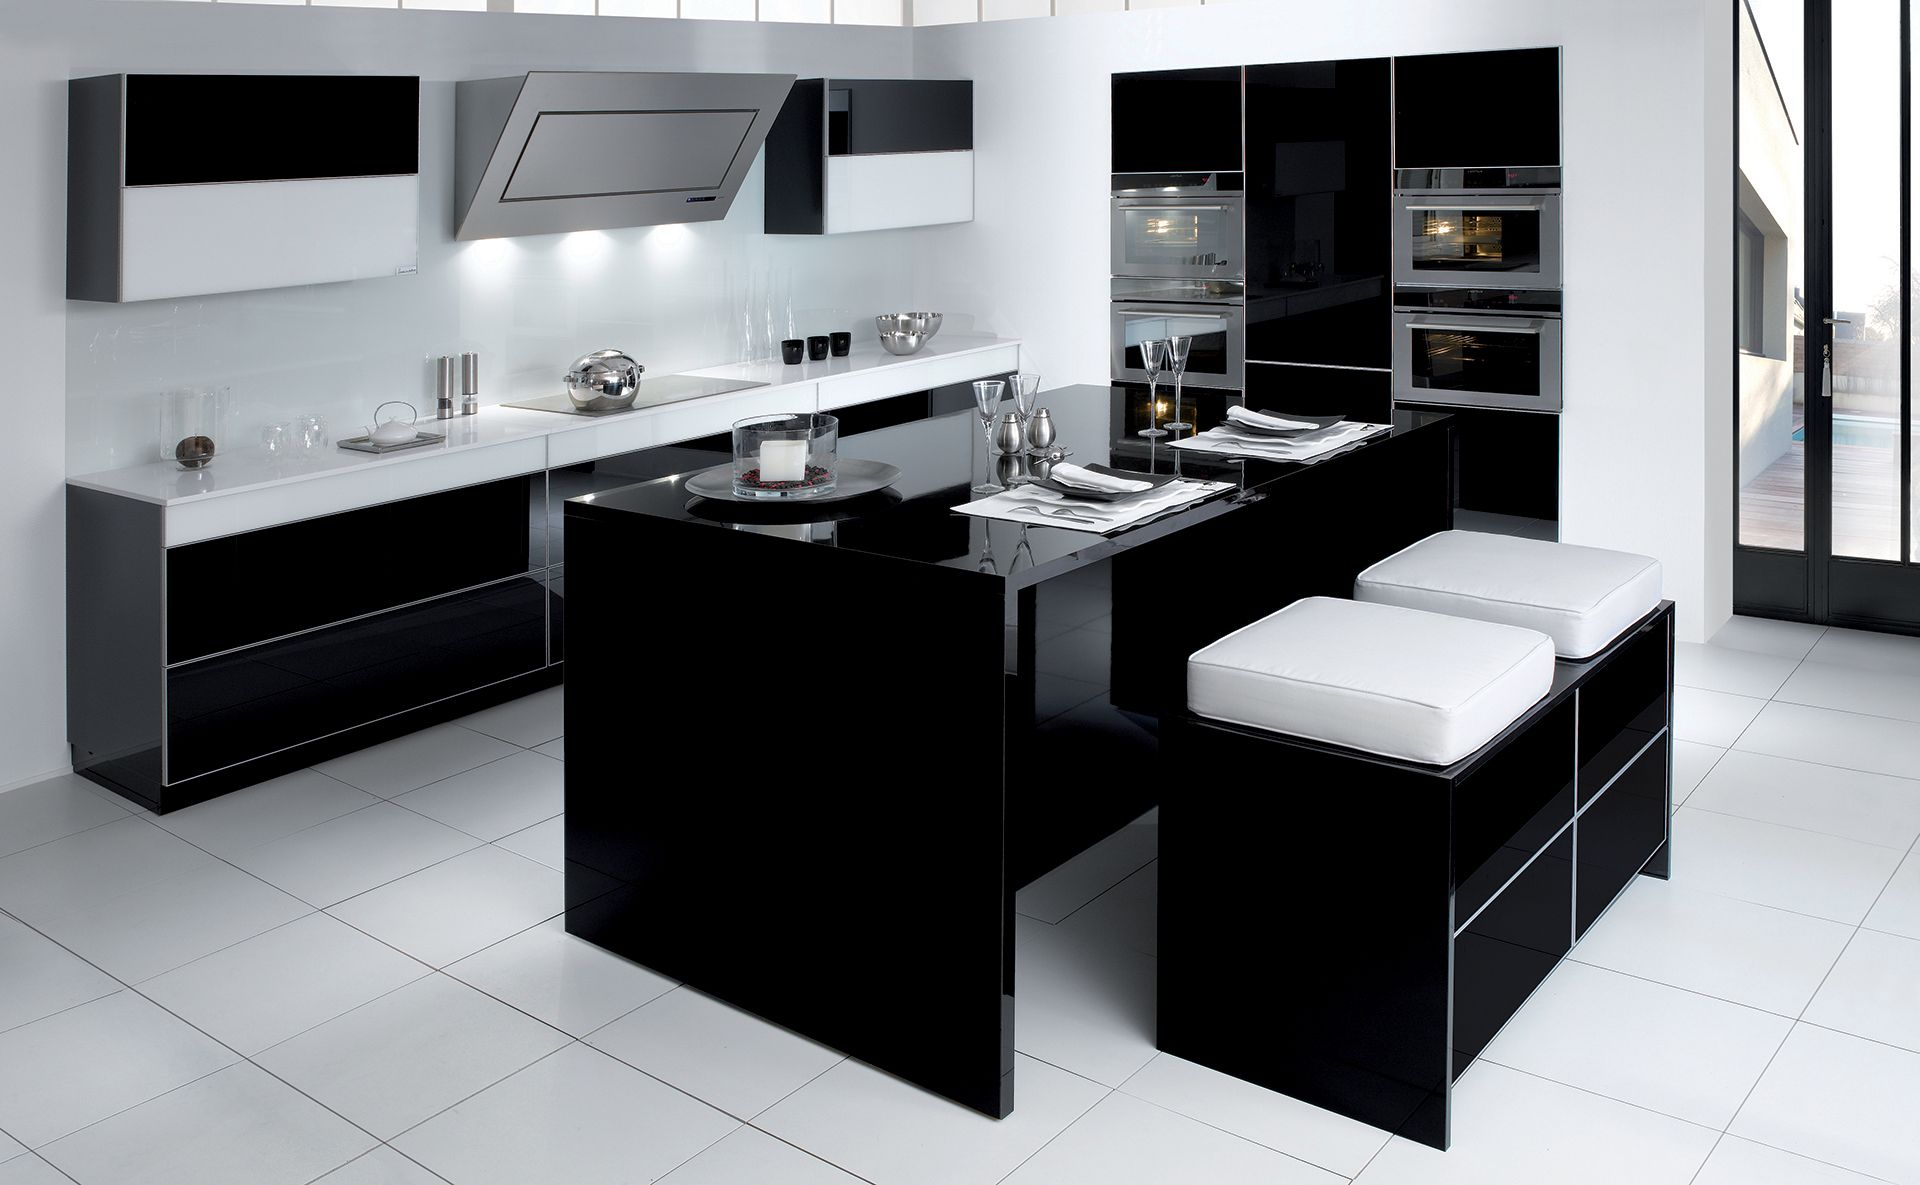 cuisine ariane noir gloss design et sur mesure par cuisines teisseire. Black Bedroom Furniture Sets. Home Design Ideas